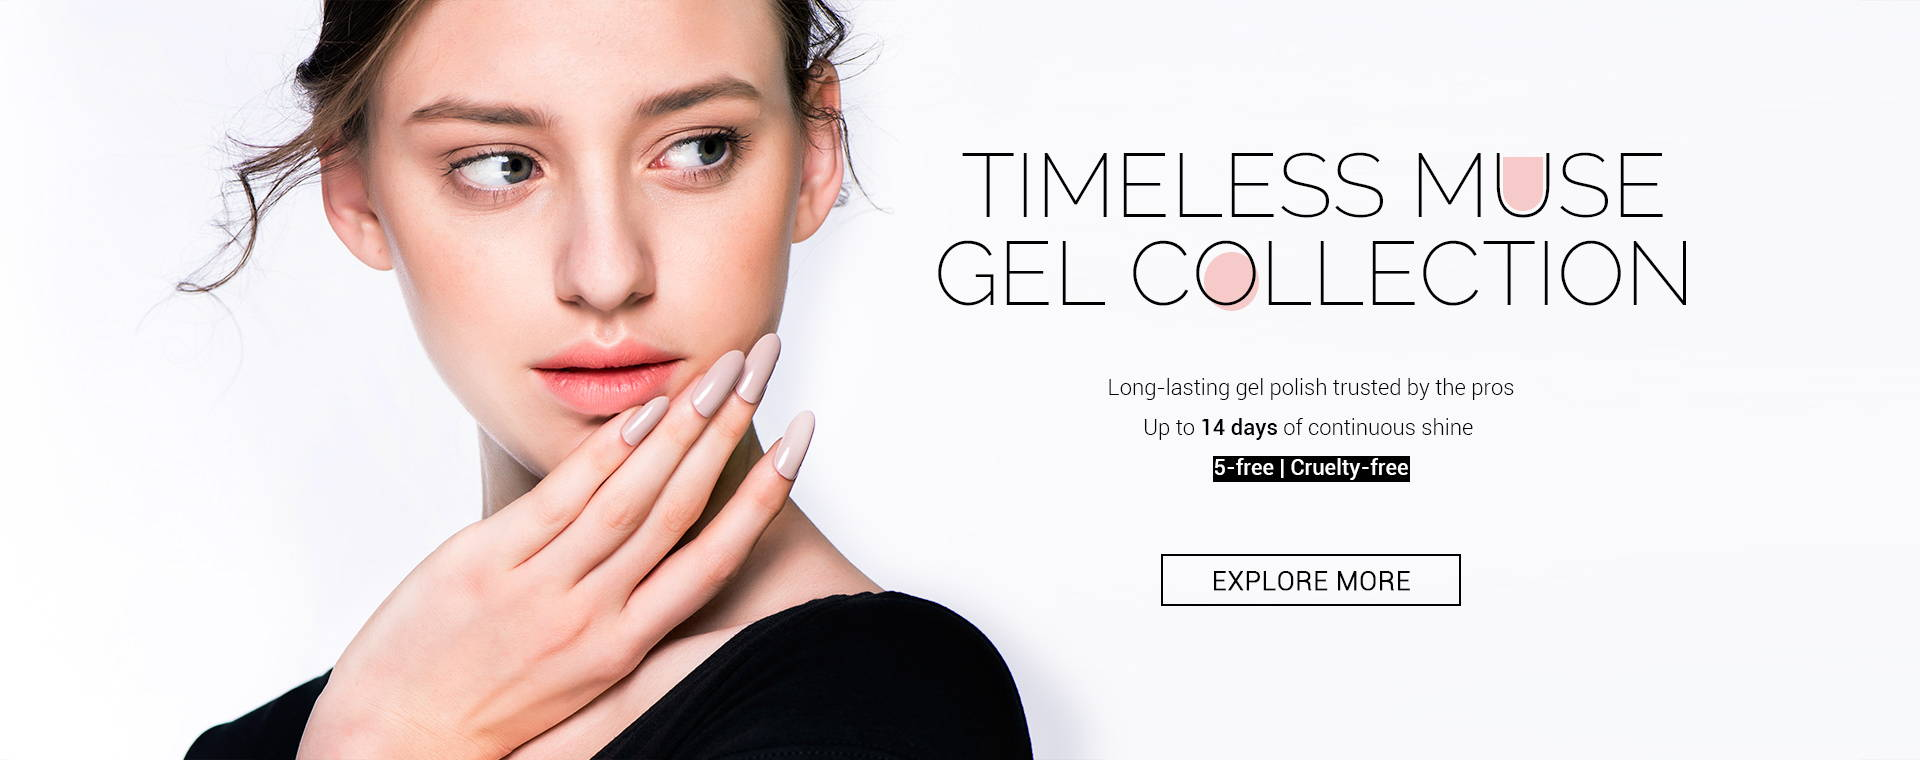 Timeless muse gel collection